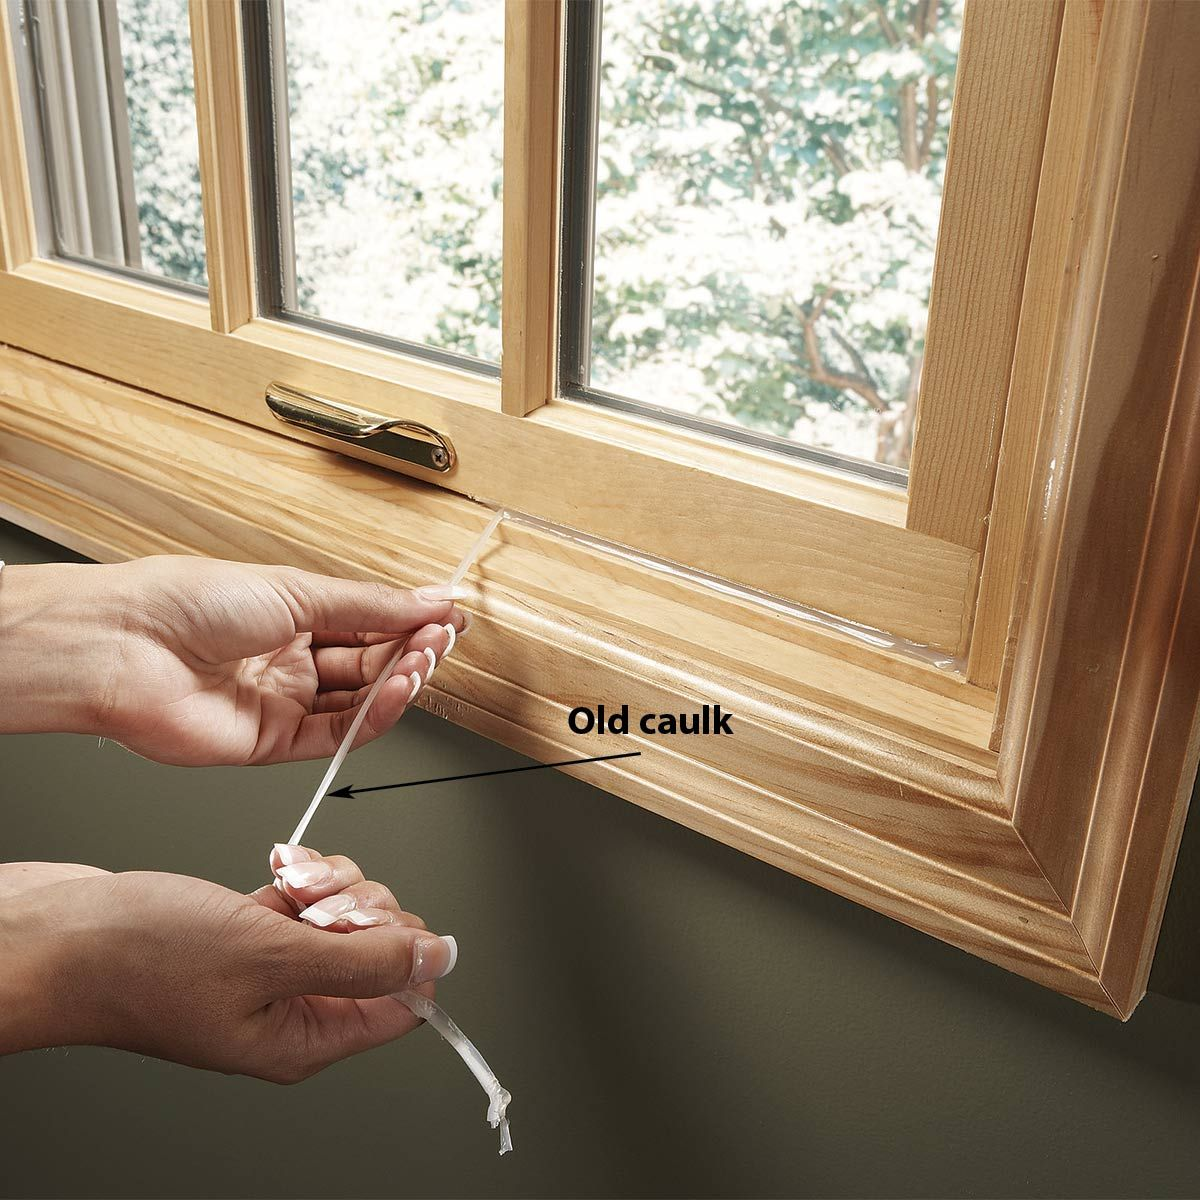 How To Seal Leaky Windows Without That Hideous Plastic Film Save Energy Energy Saving Tips Windows